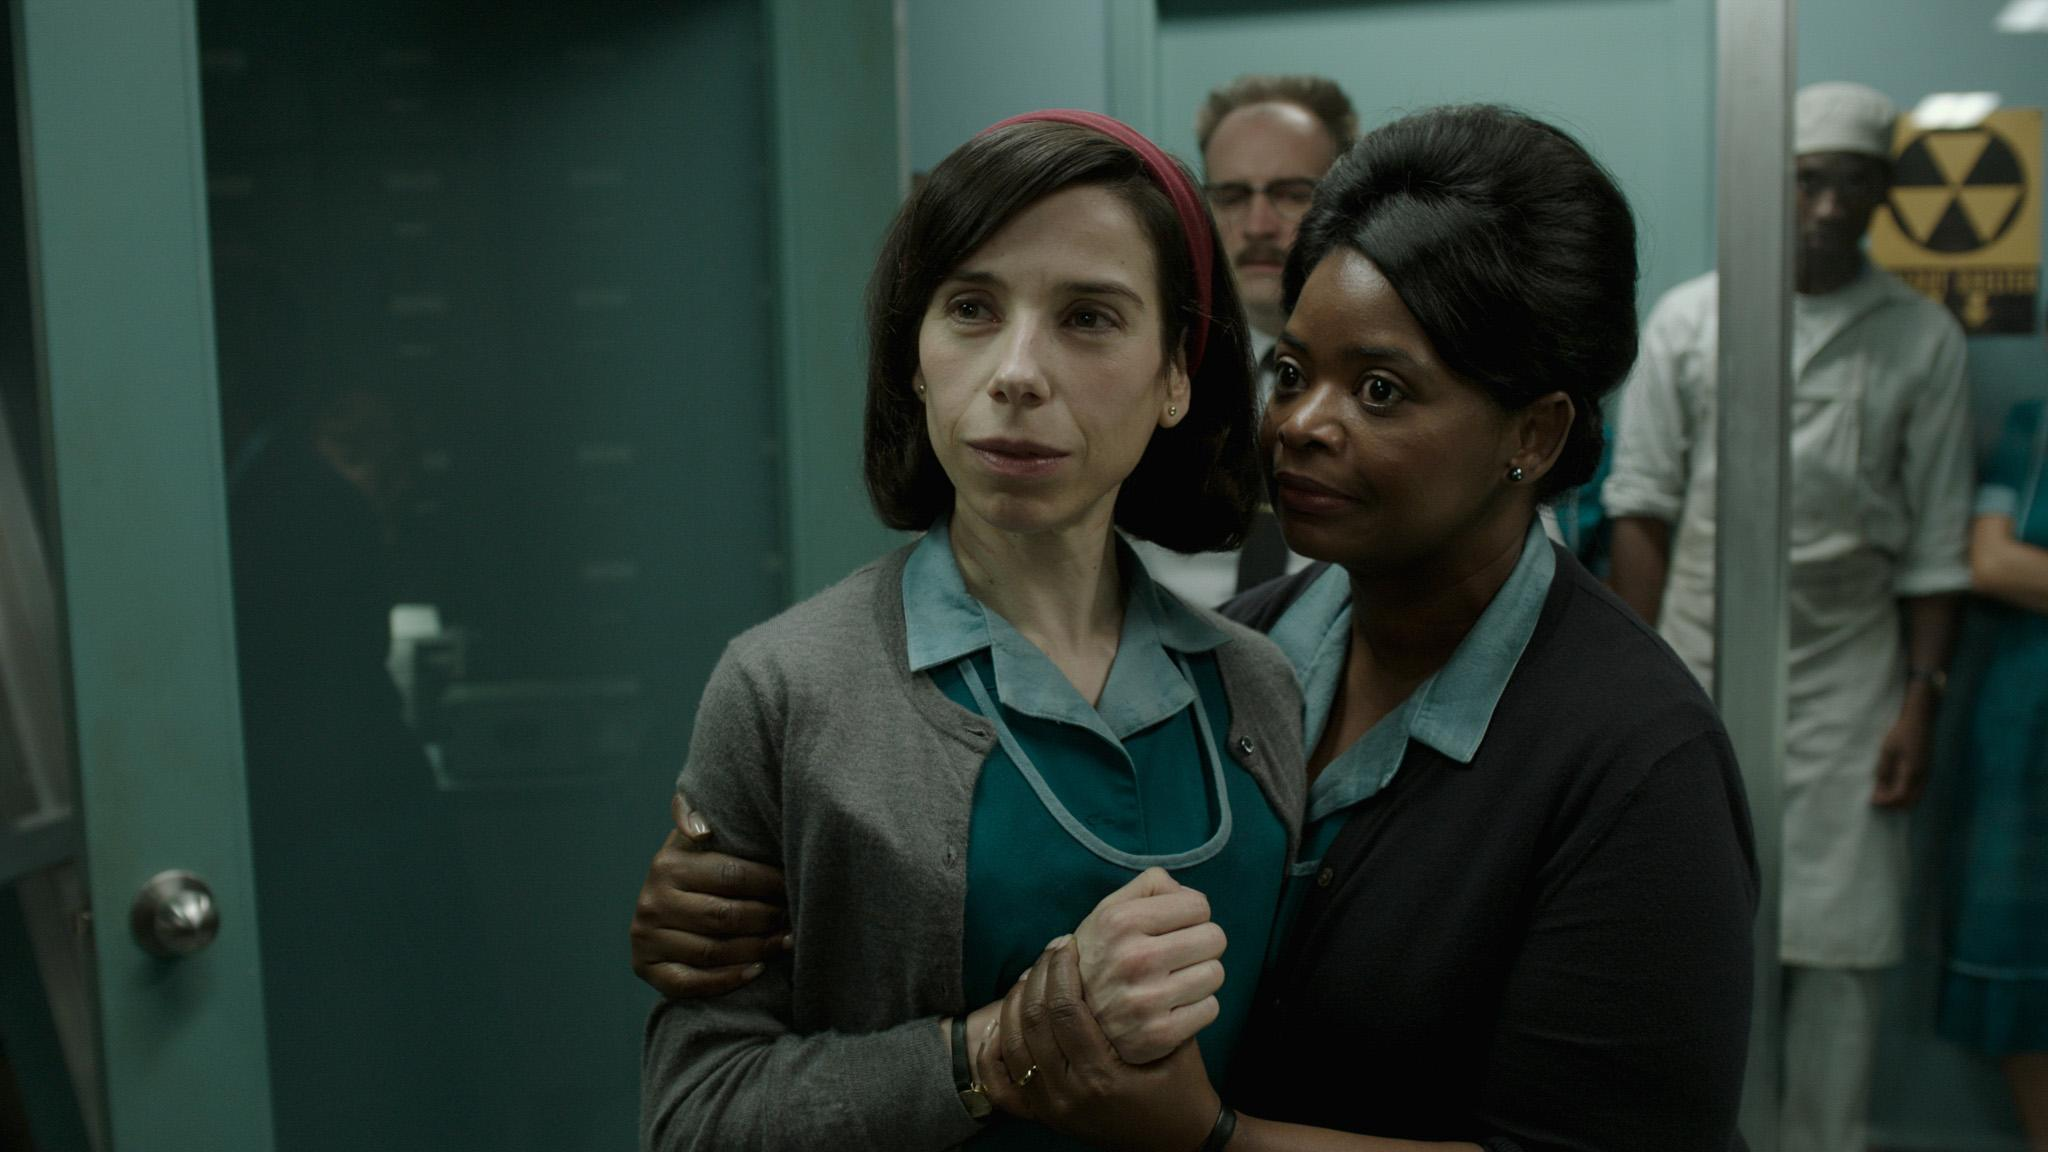 Sally Hawkins and Octavia Spencer in the film